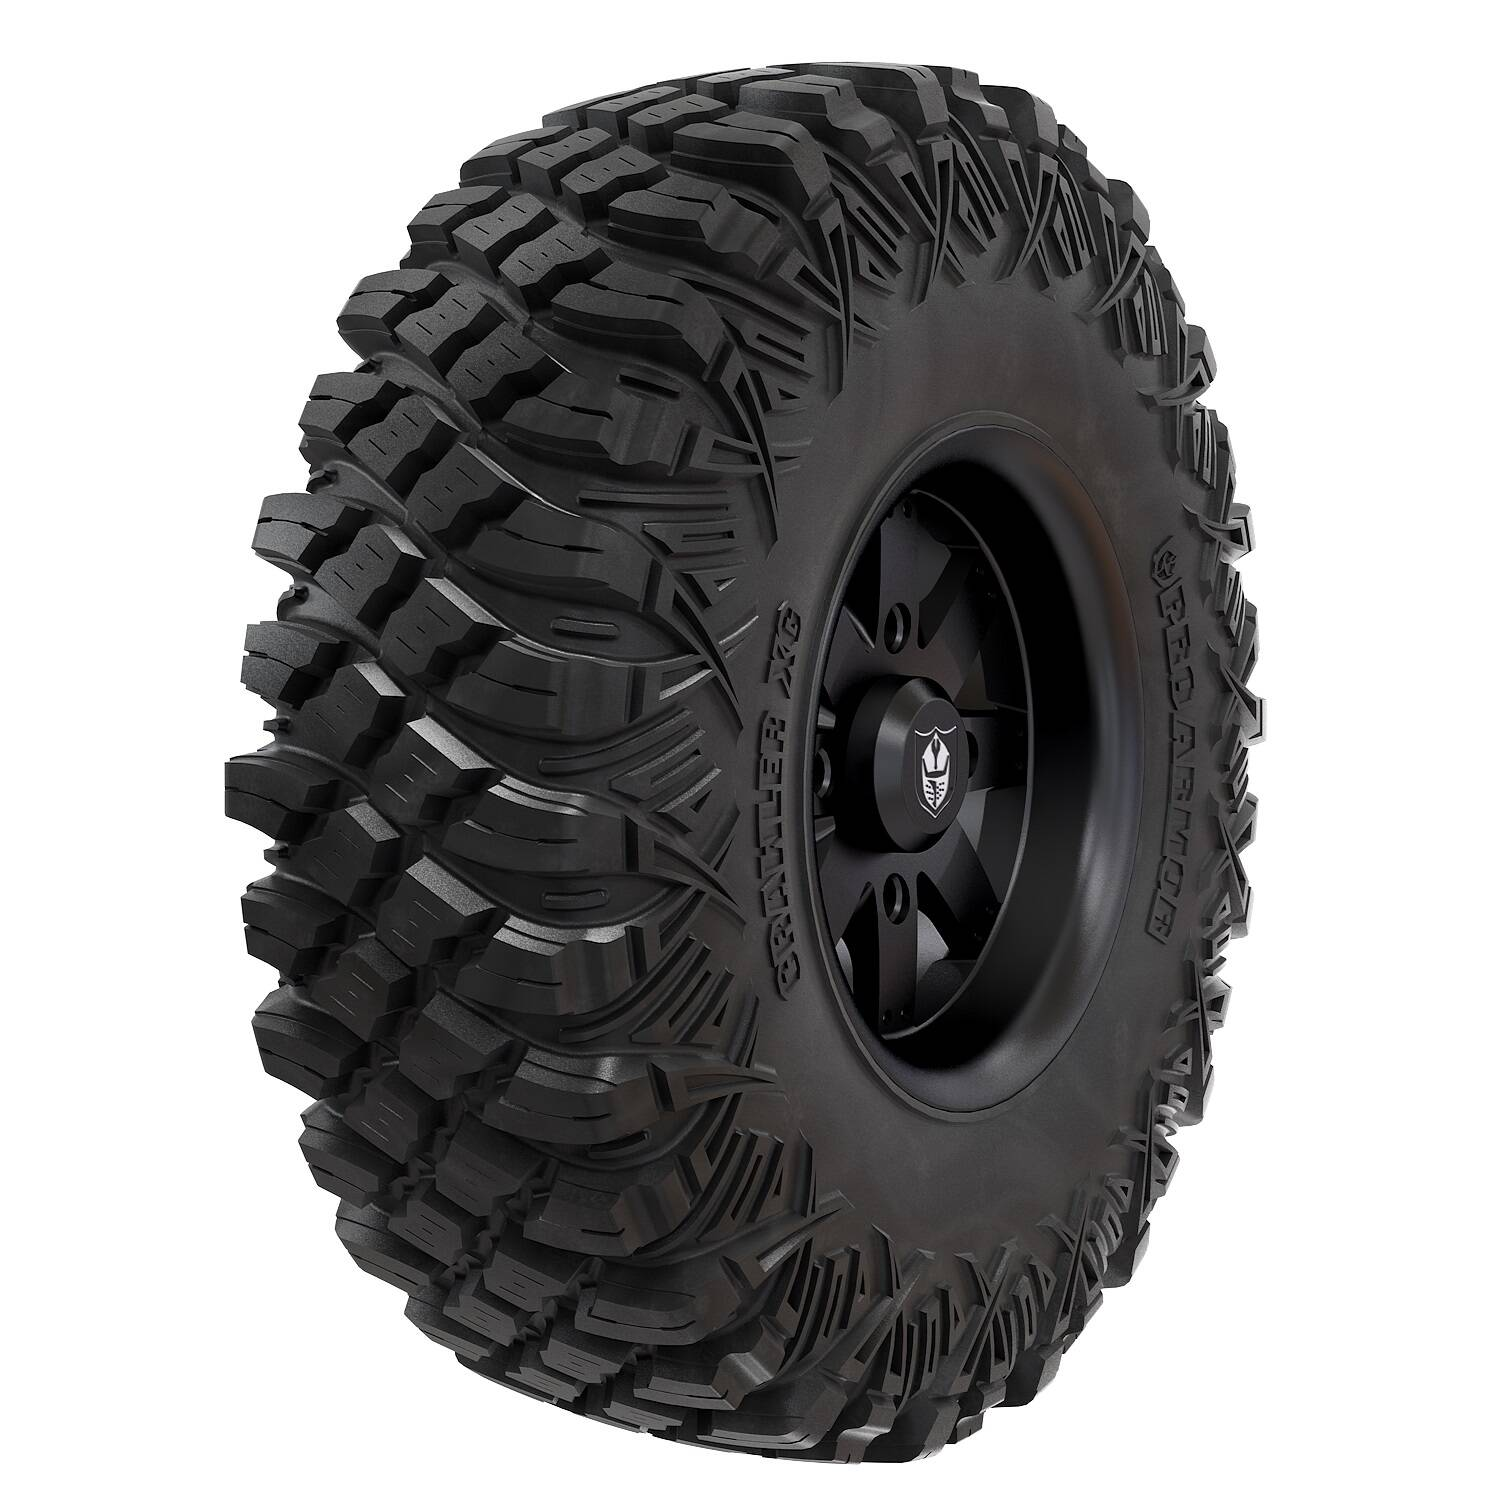 "Wheel & Tire Set: Pro Armor® Crawler XG 32"" & Amplify- Accent"